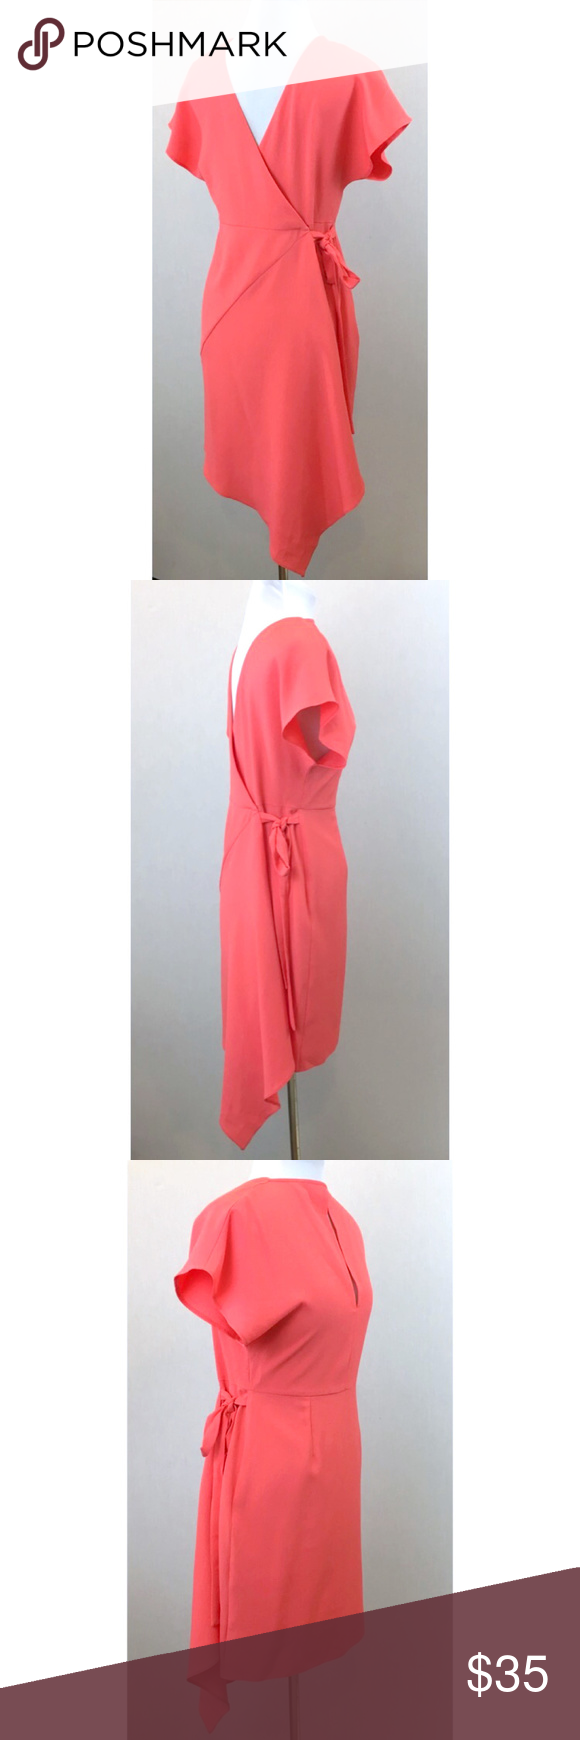 Topshop coral pink short sleeve wrap dress petite nwt my posh